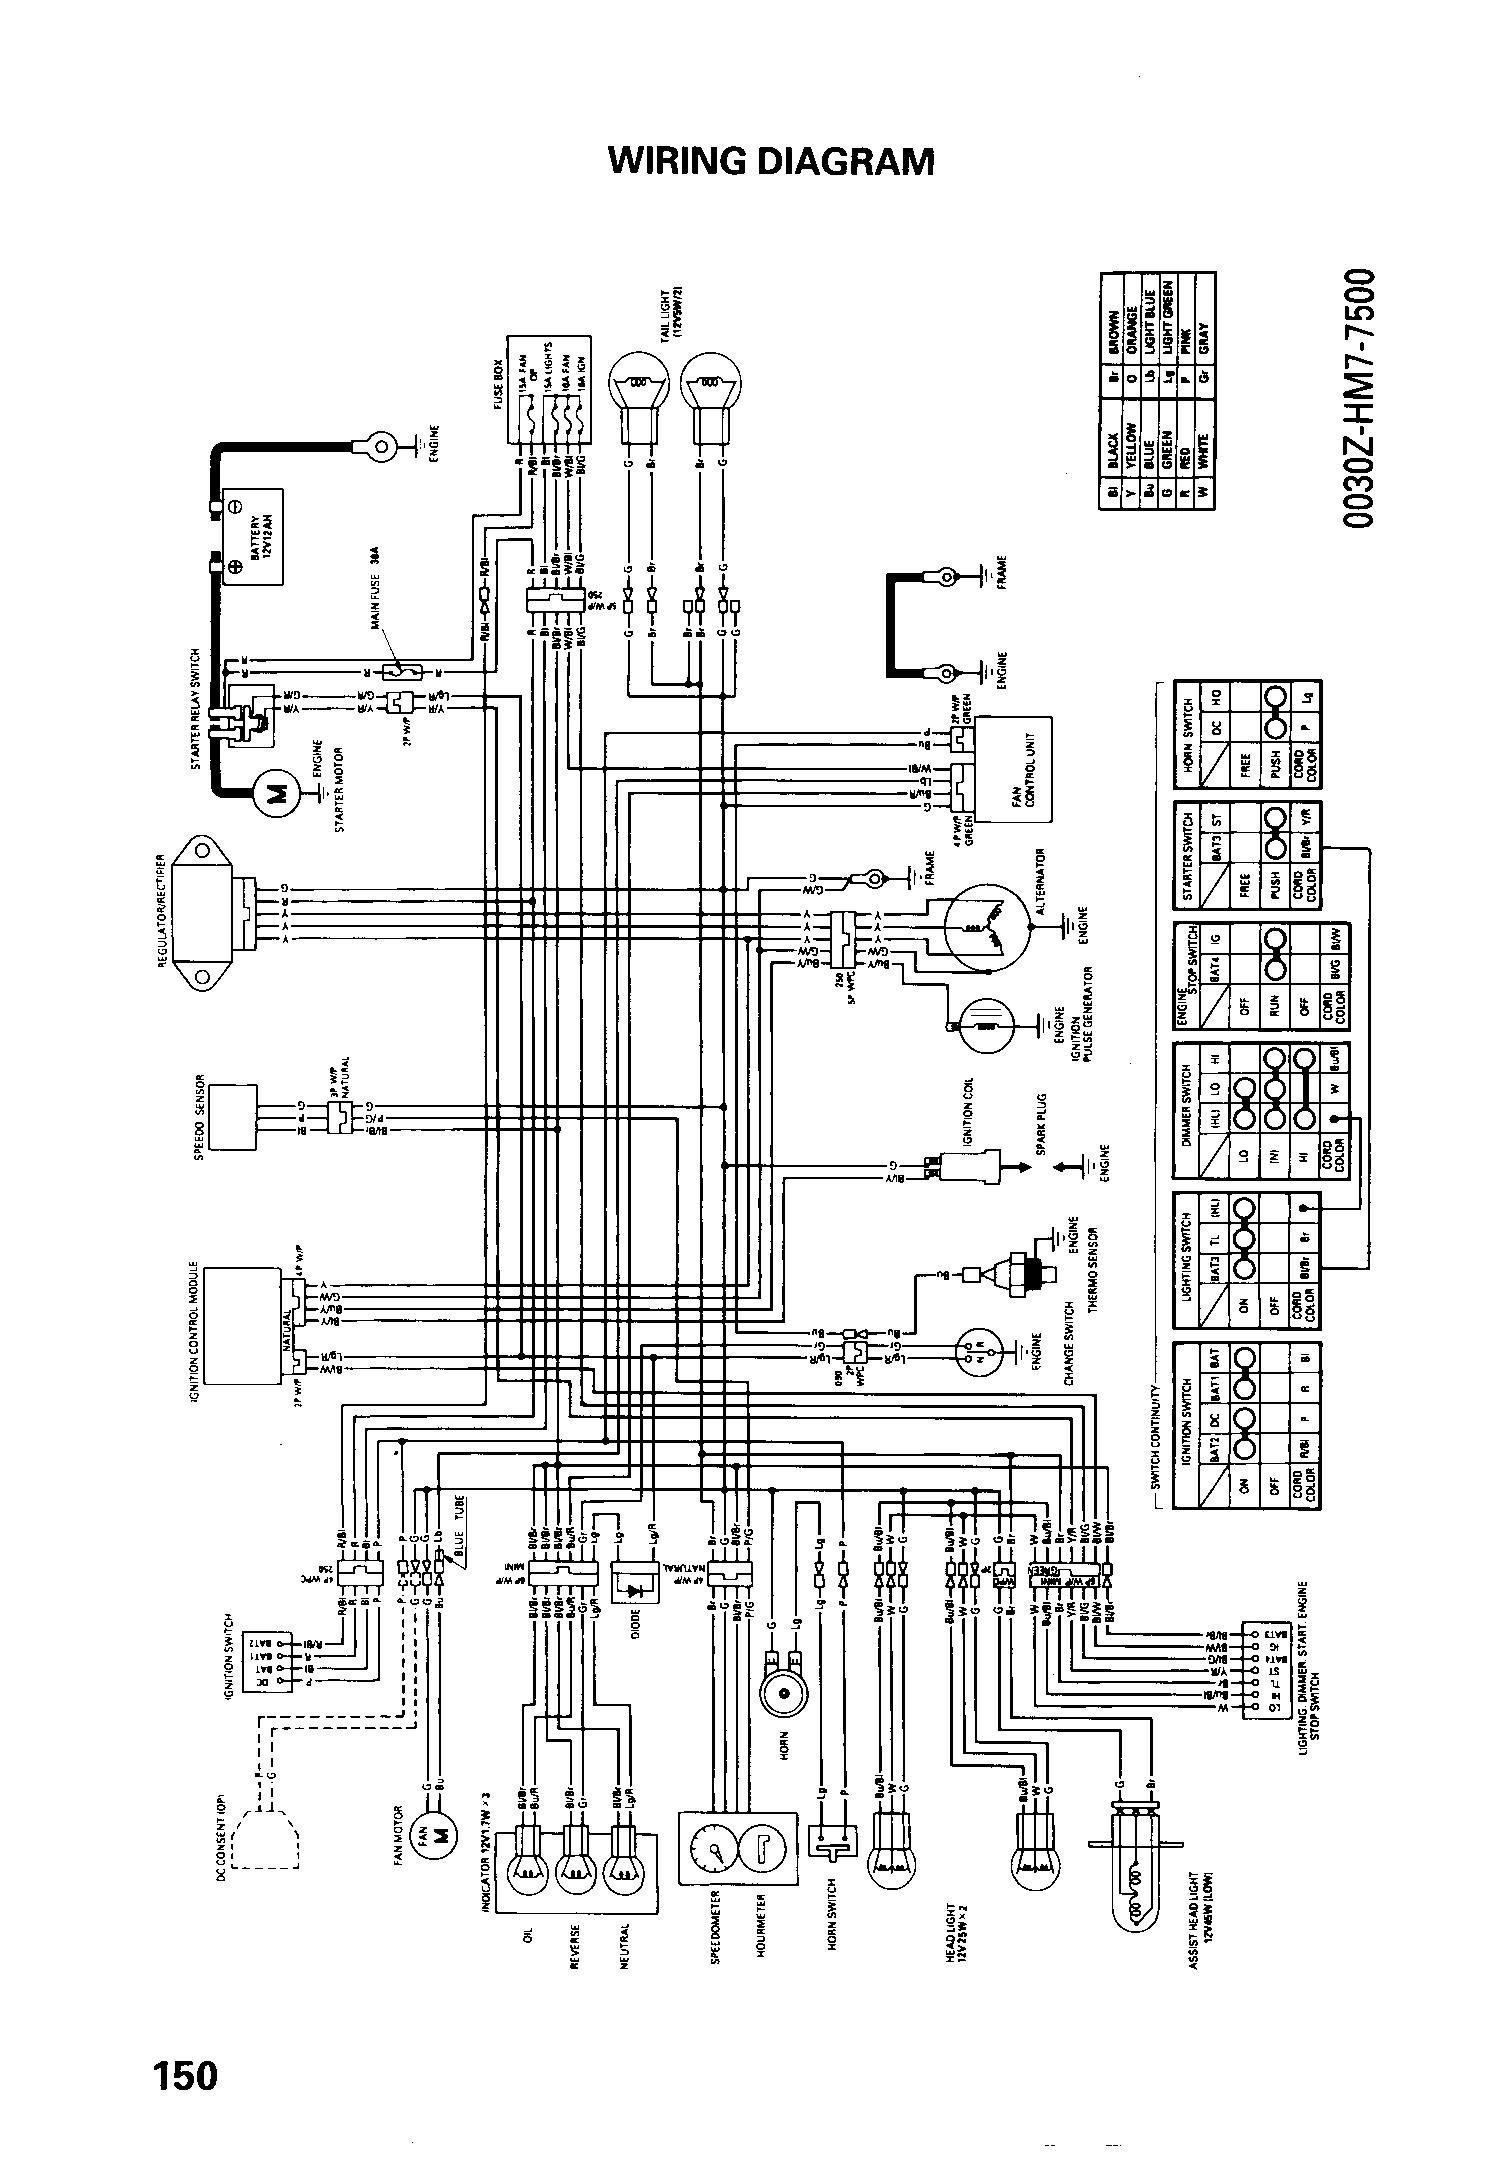 2006 honda rancher wiring diagram repair machine 2008 Honda Foreman Wiring-Diagram